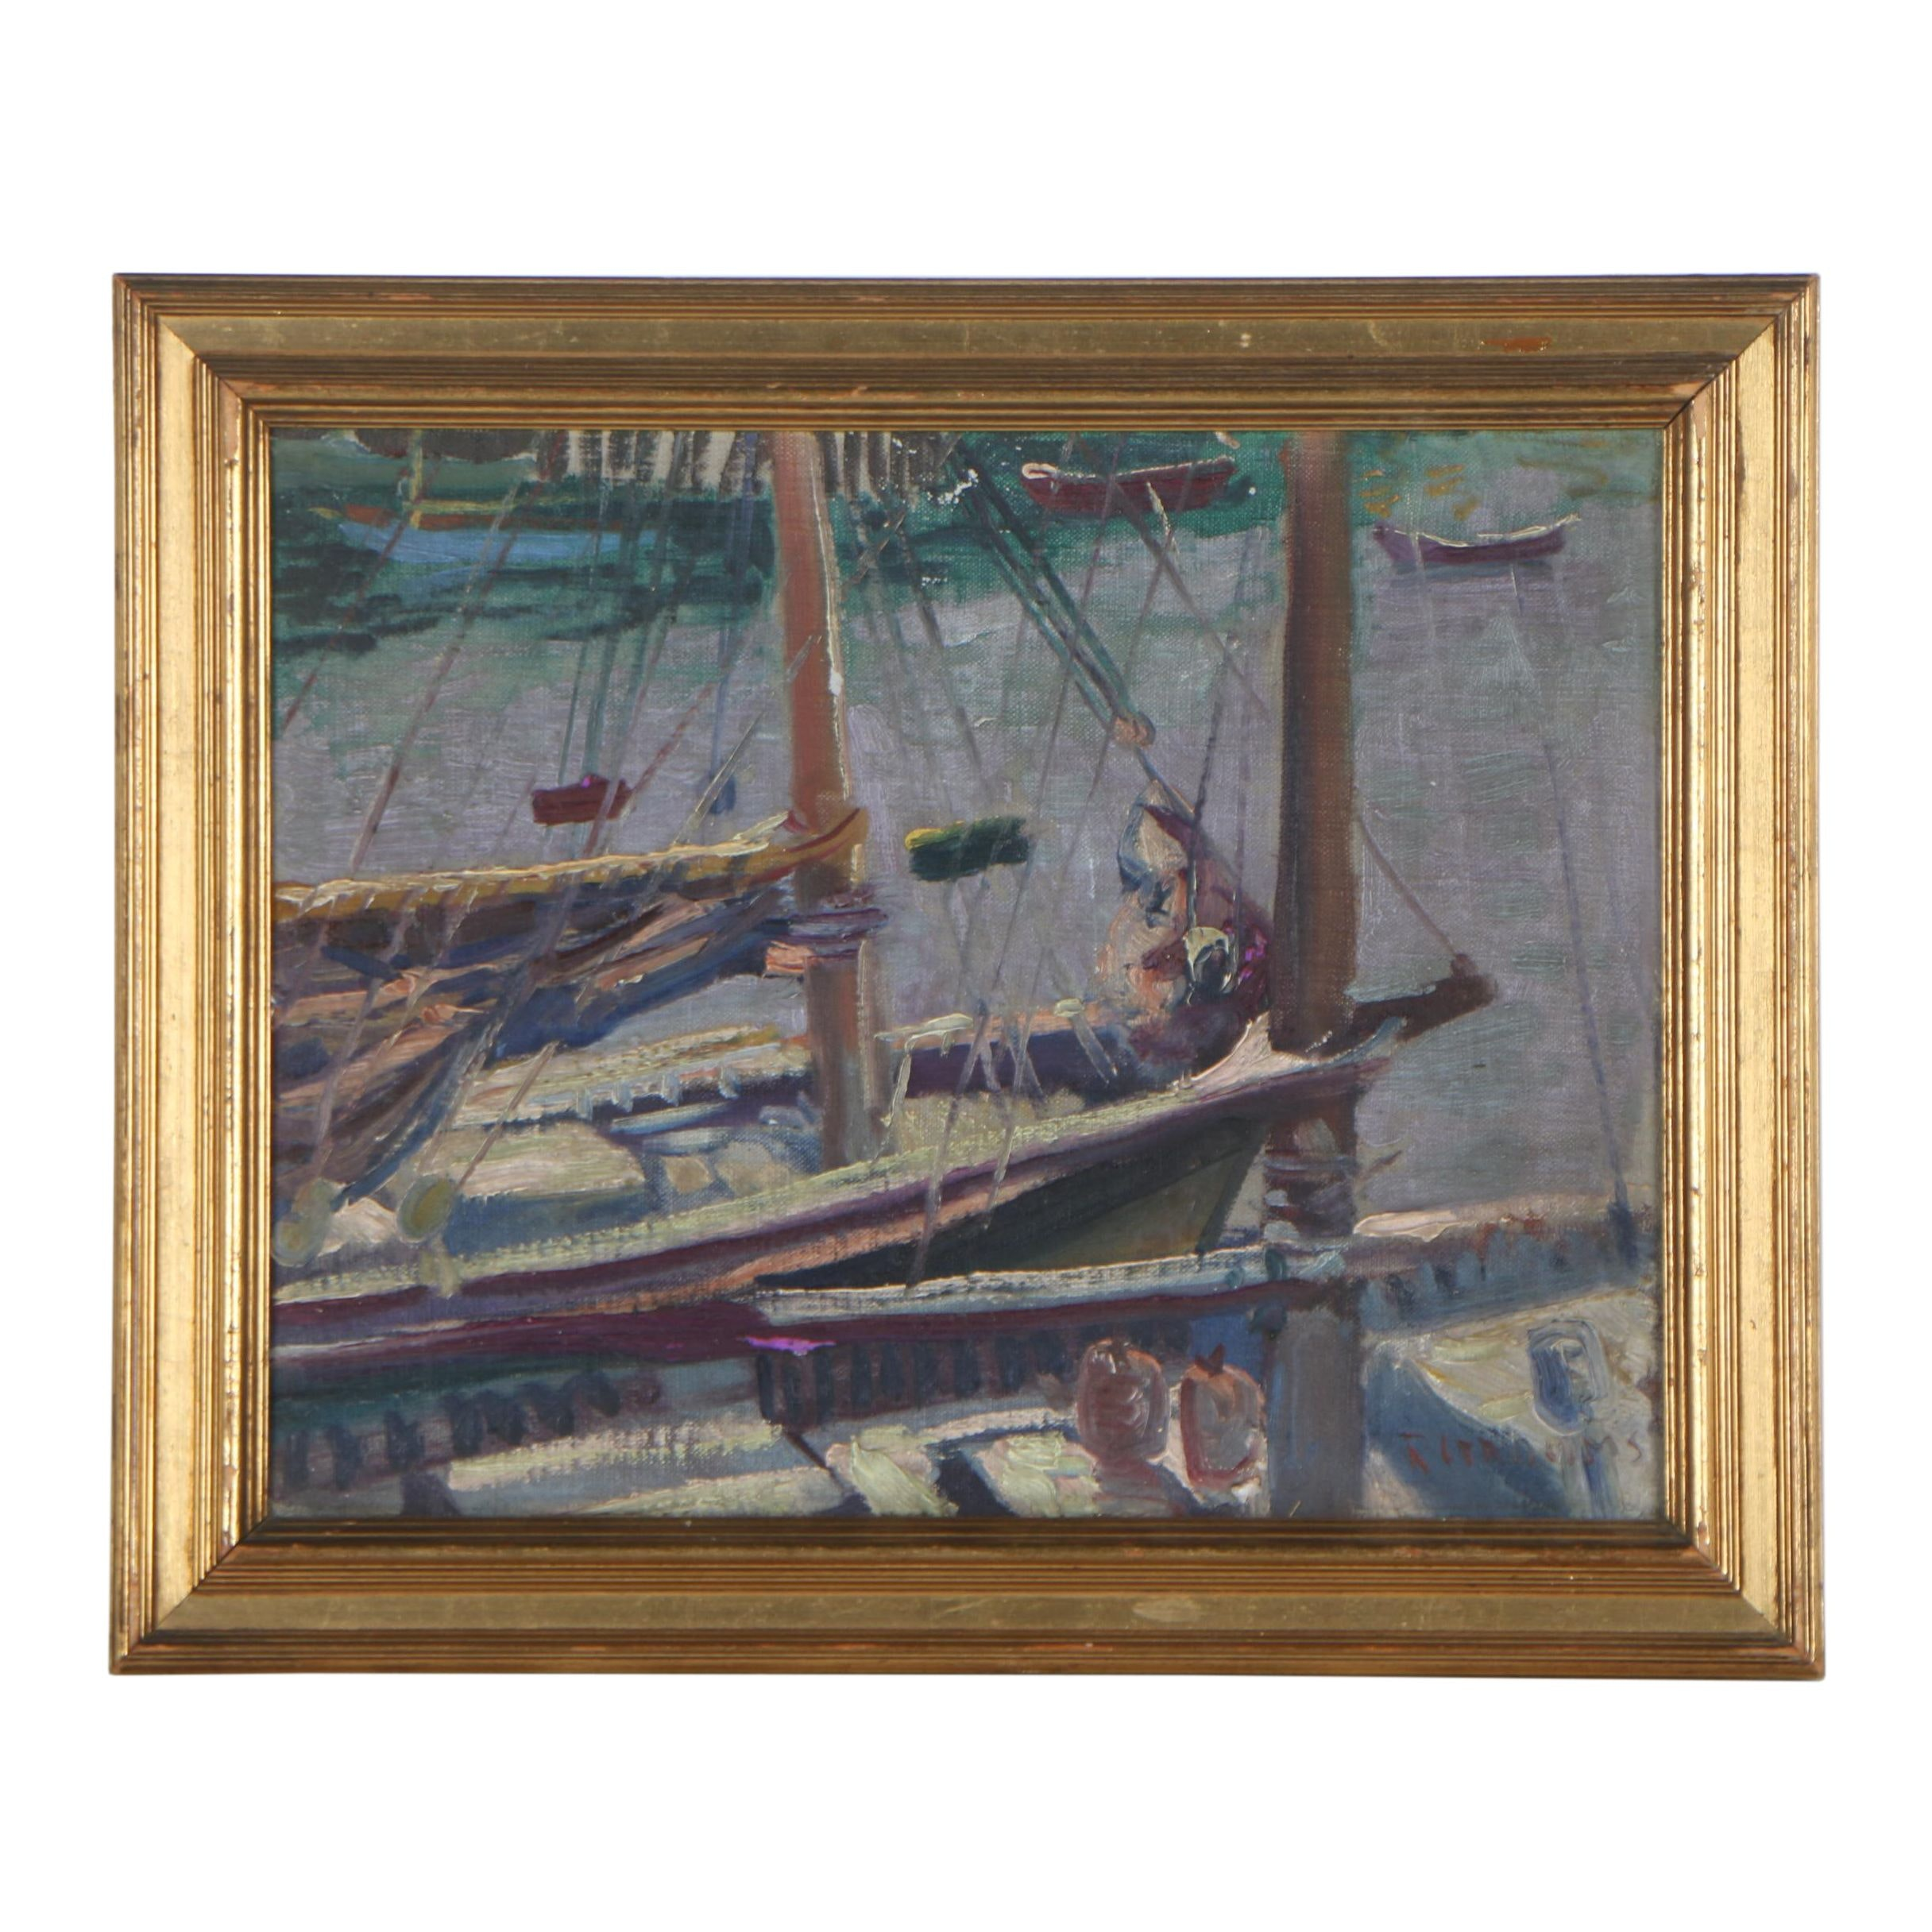 Reginald Grooms Oil Painting of Sailboats